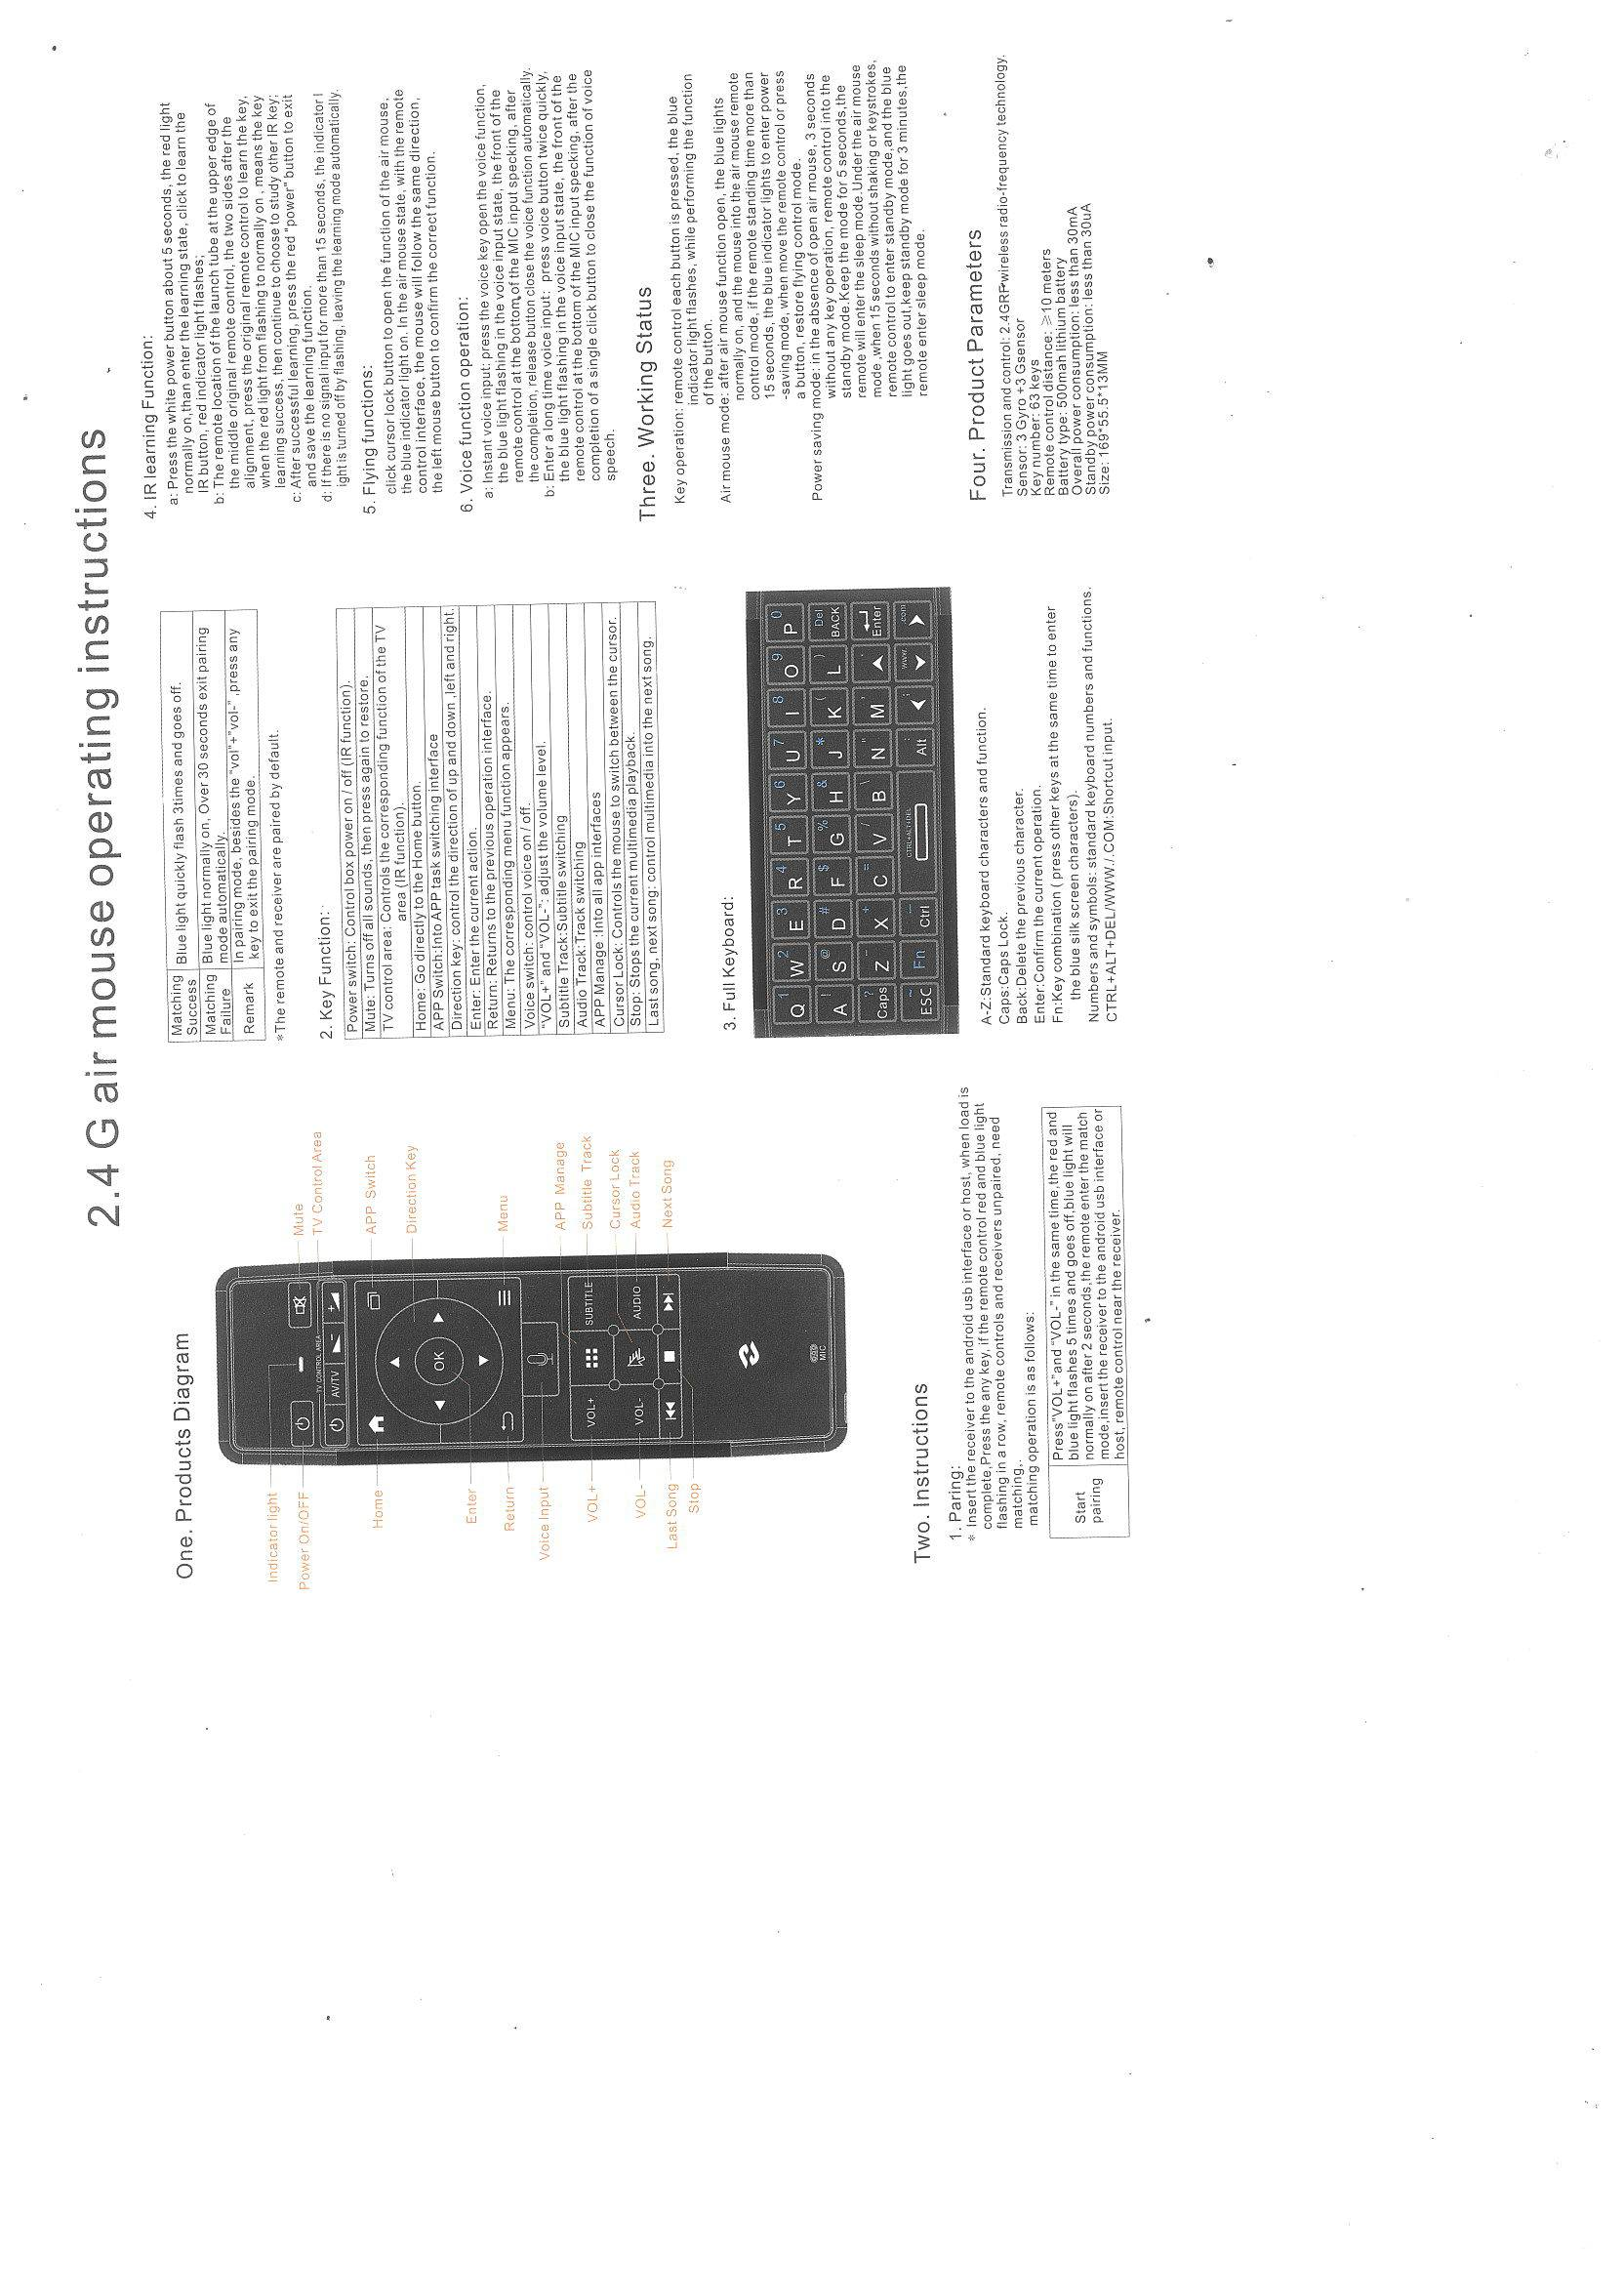 27a3b5b0126 https://www.chinavasion.com/china/wholesale/Computer_Accessories/Mouse_Keyboard/Zidoo-V5- Wireless-Air-Mouse/ - CVADP-A845-manual